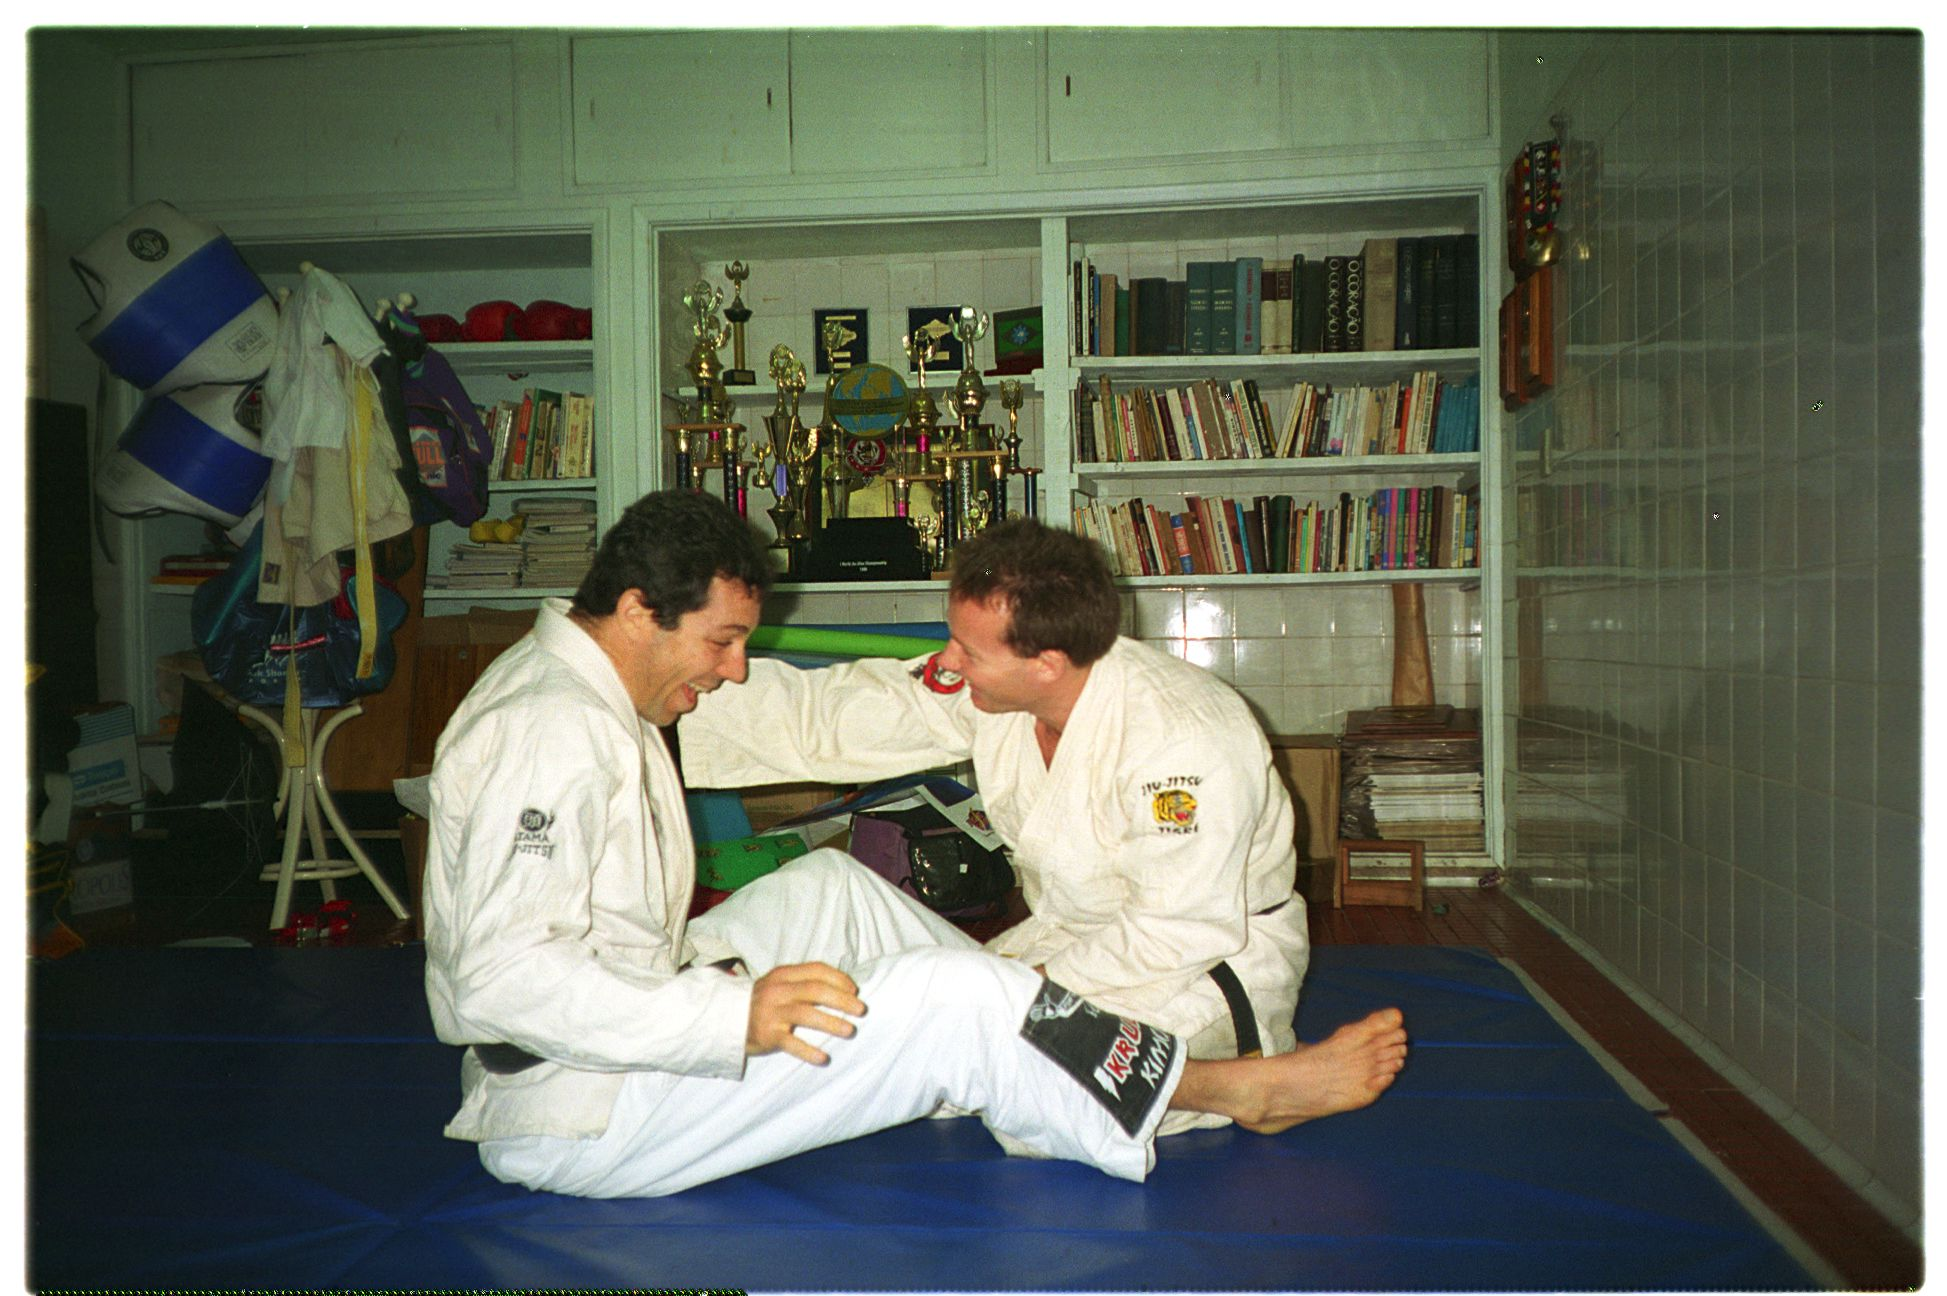 Weekend training in Carlinhos' (Carlos Gracie Jnr.) garage in Brasil 1991